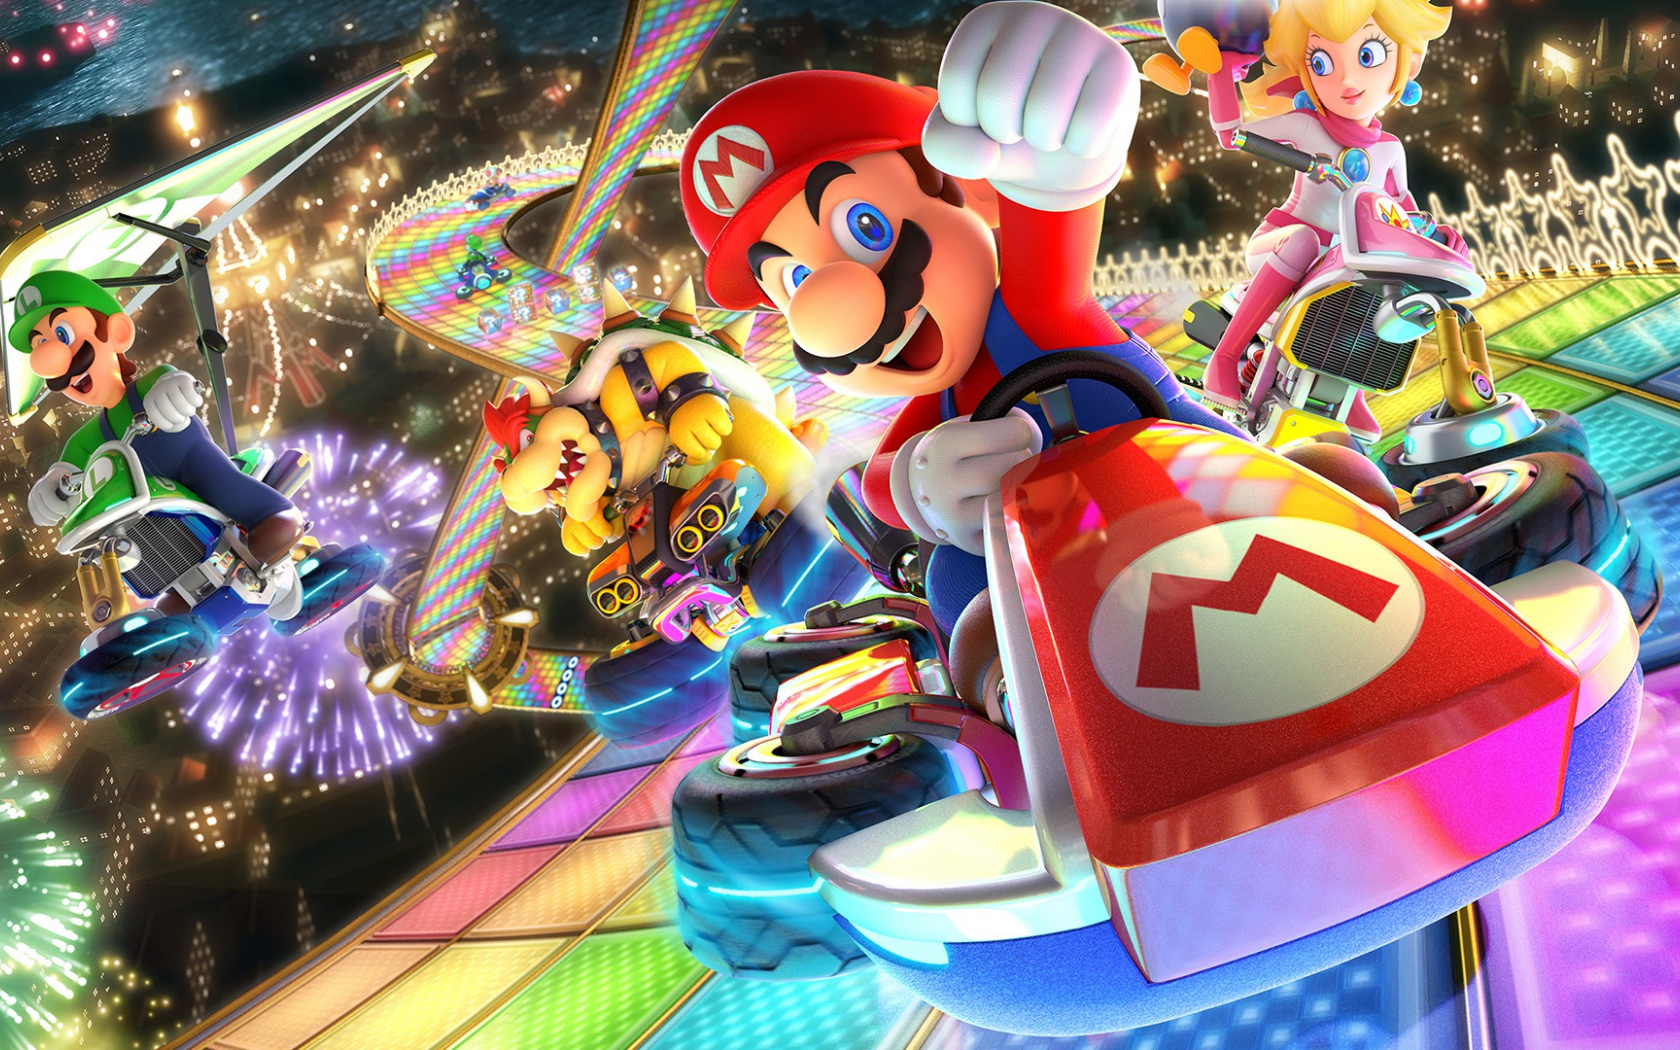 Free Download Mario Kart 8 Wallpaper Hd 110 Images In Collection